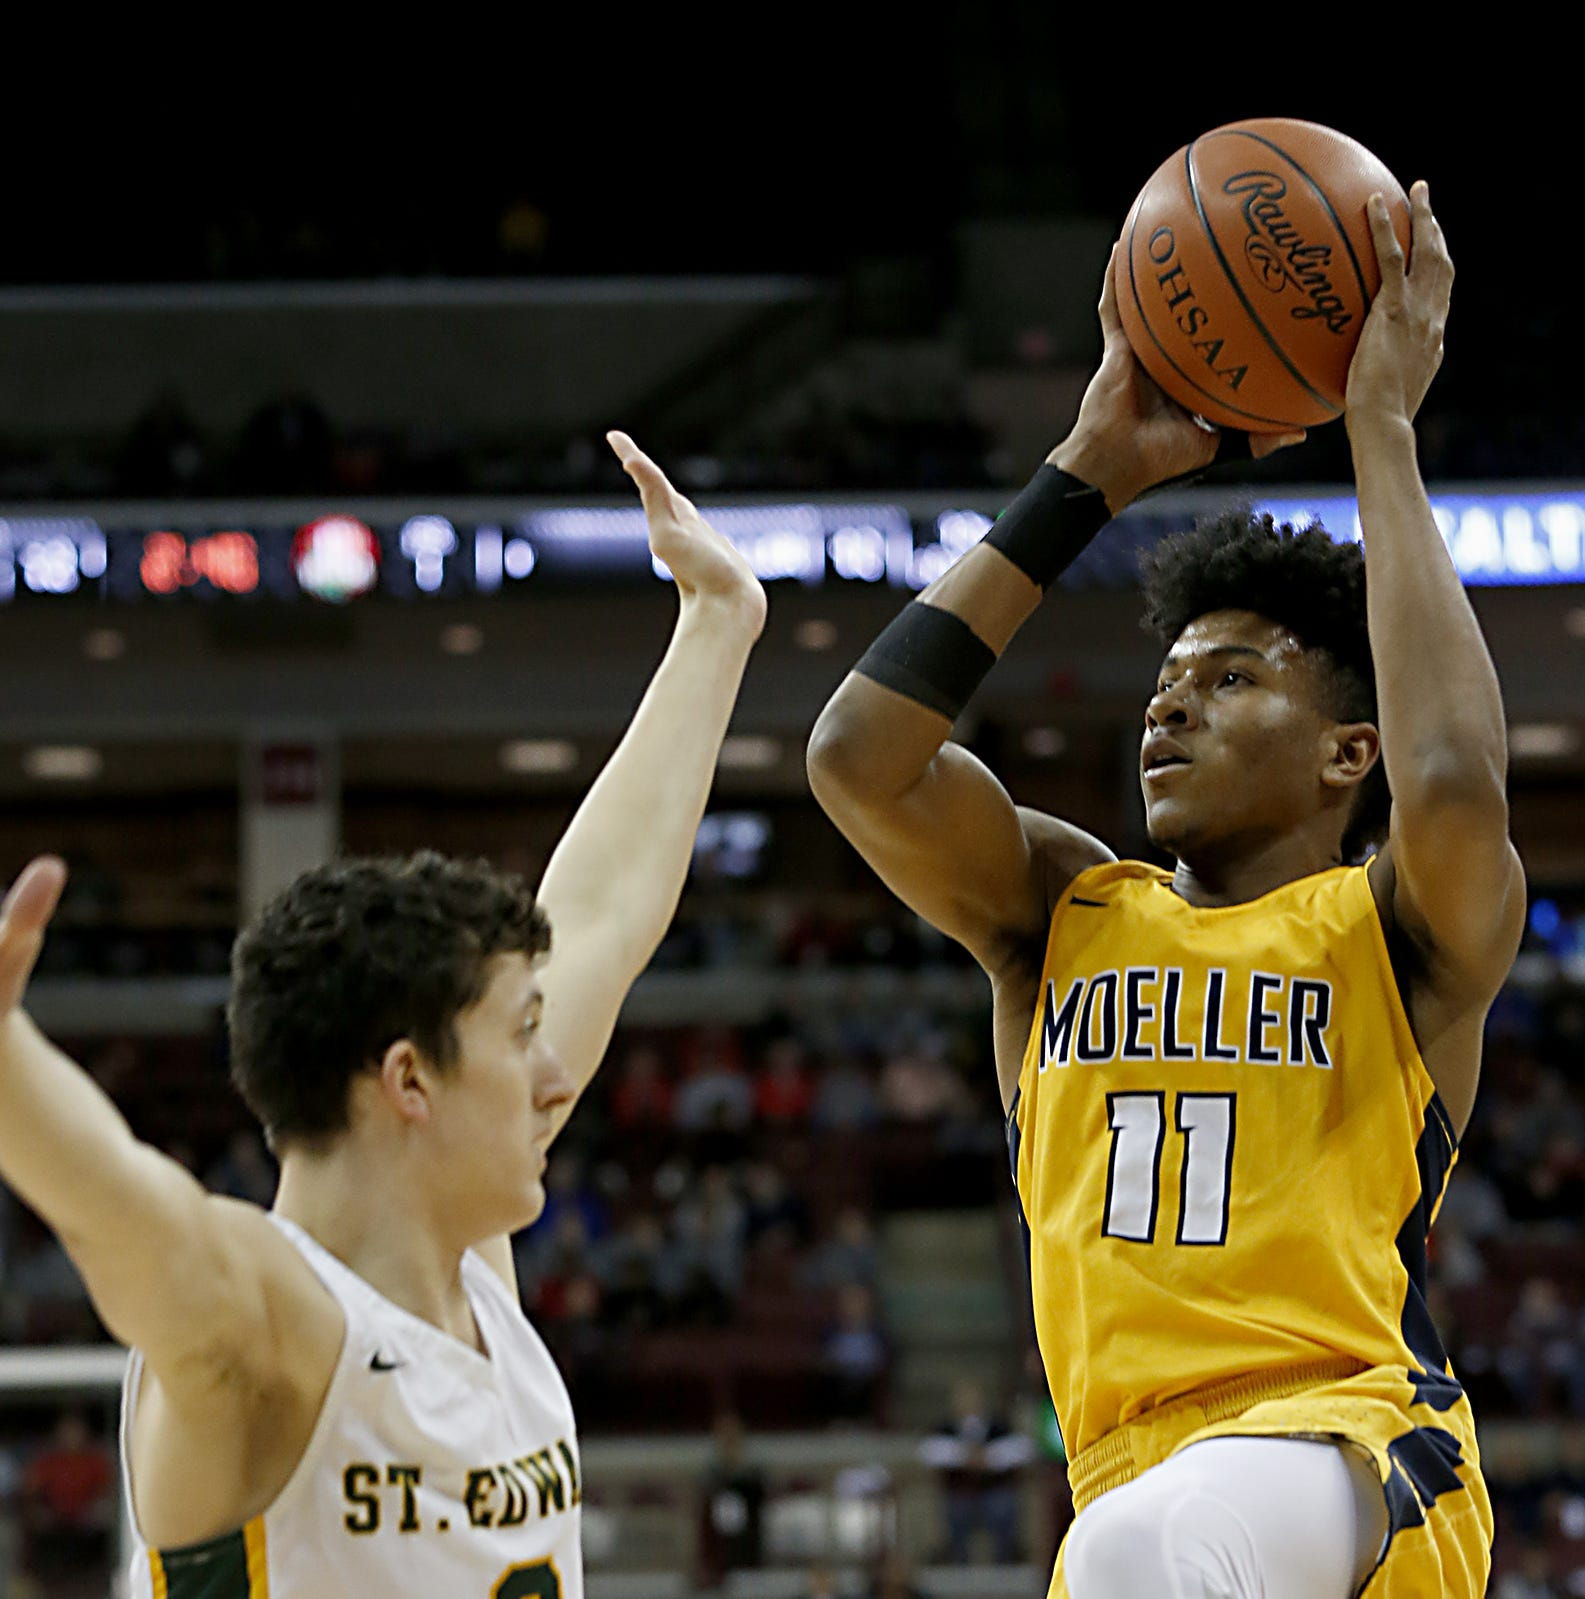 Moeller handles Lakewood St. Edward, 72-52, advances to 3rd-straight state championship